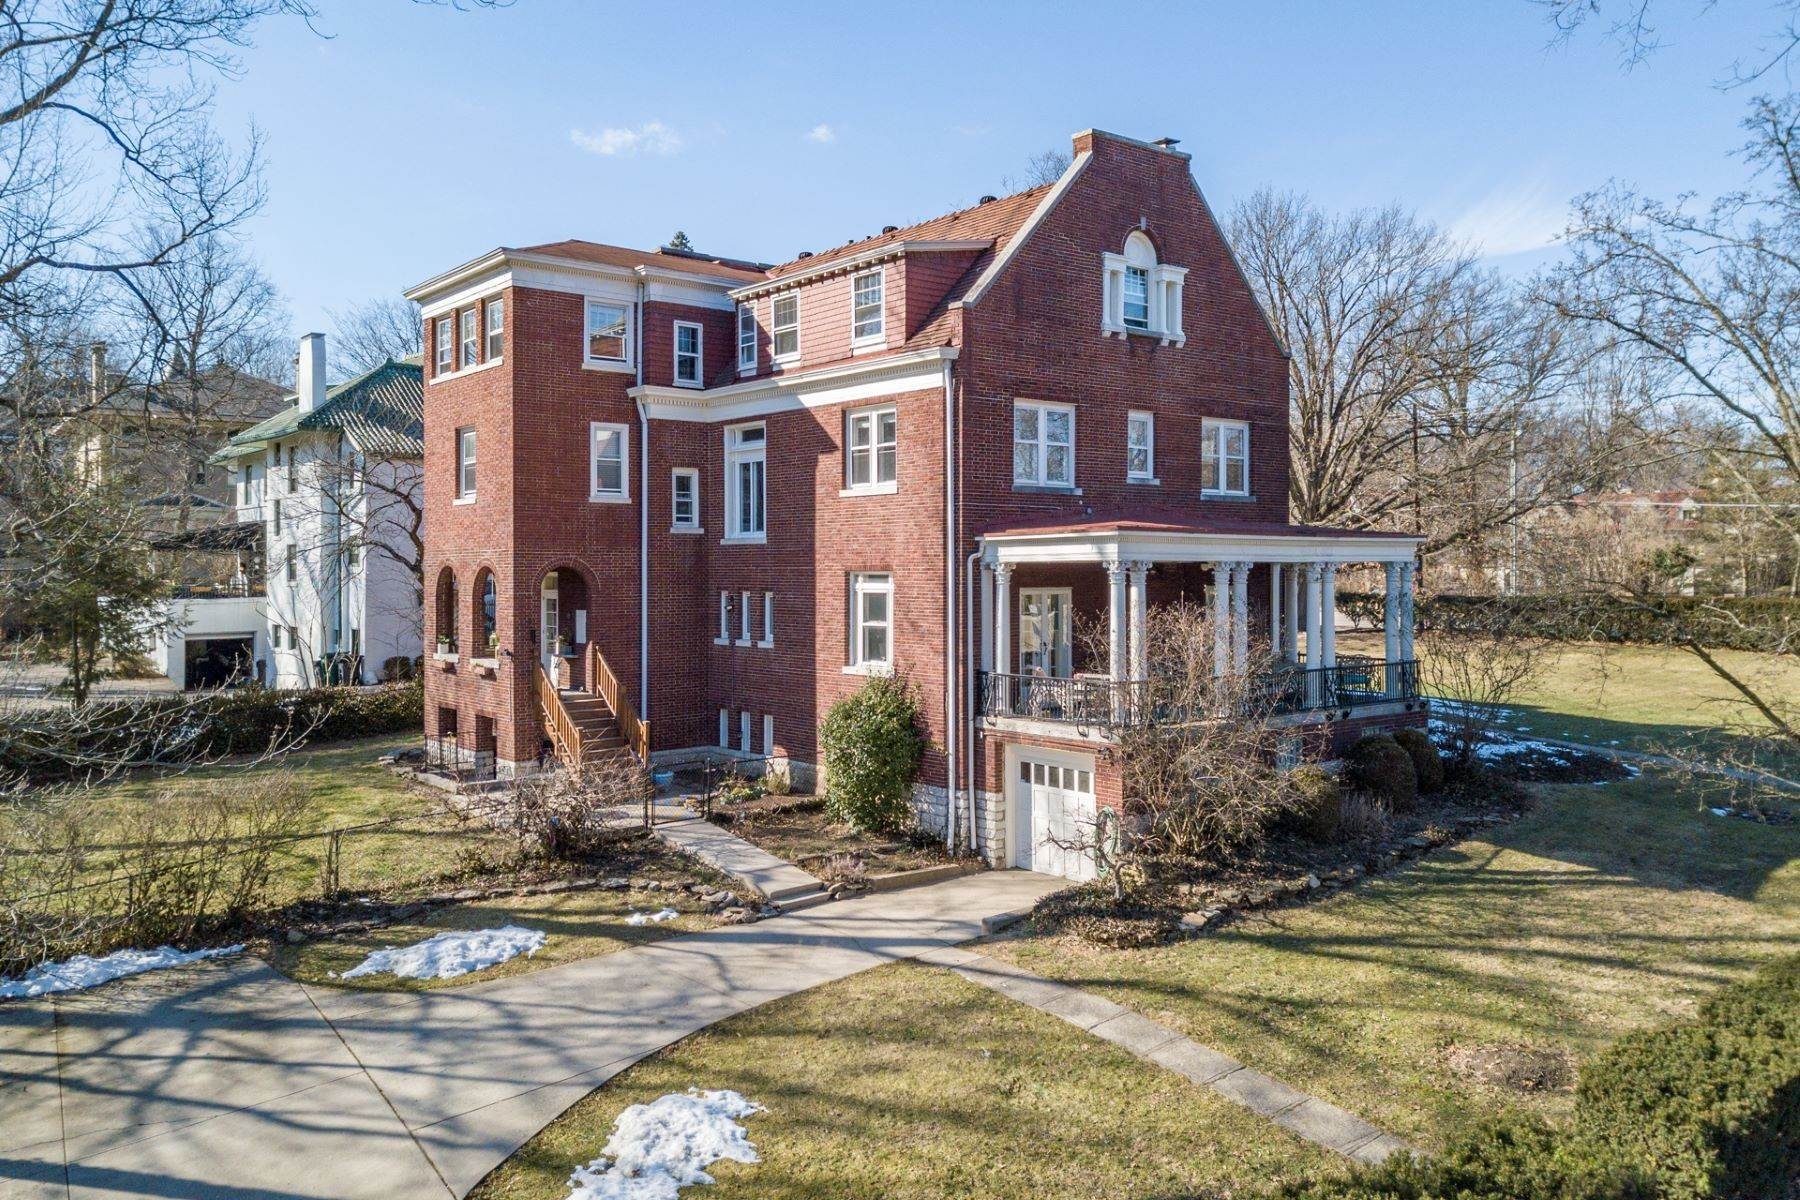 44. Single Family Homes for Sale at 1865 Madison Road, Cincinnati, OH 45206 1865 Madison Road Cincinnati, Ohio 45206 United States